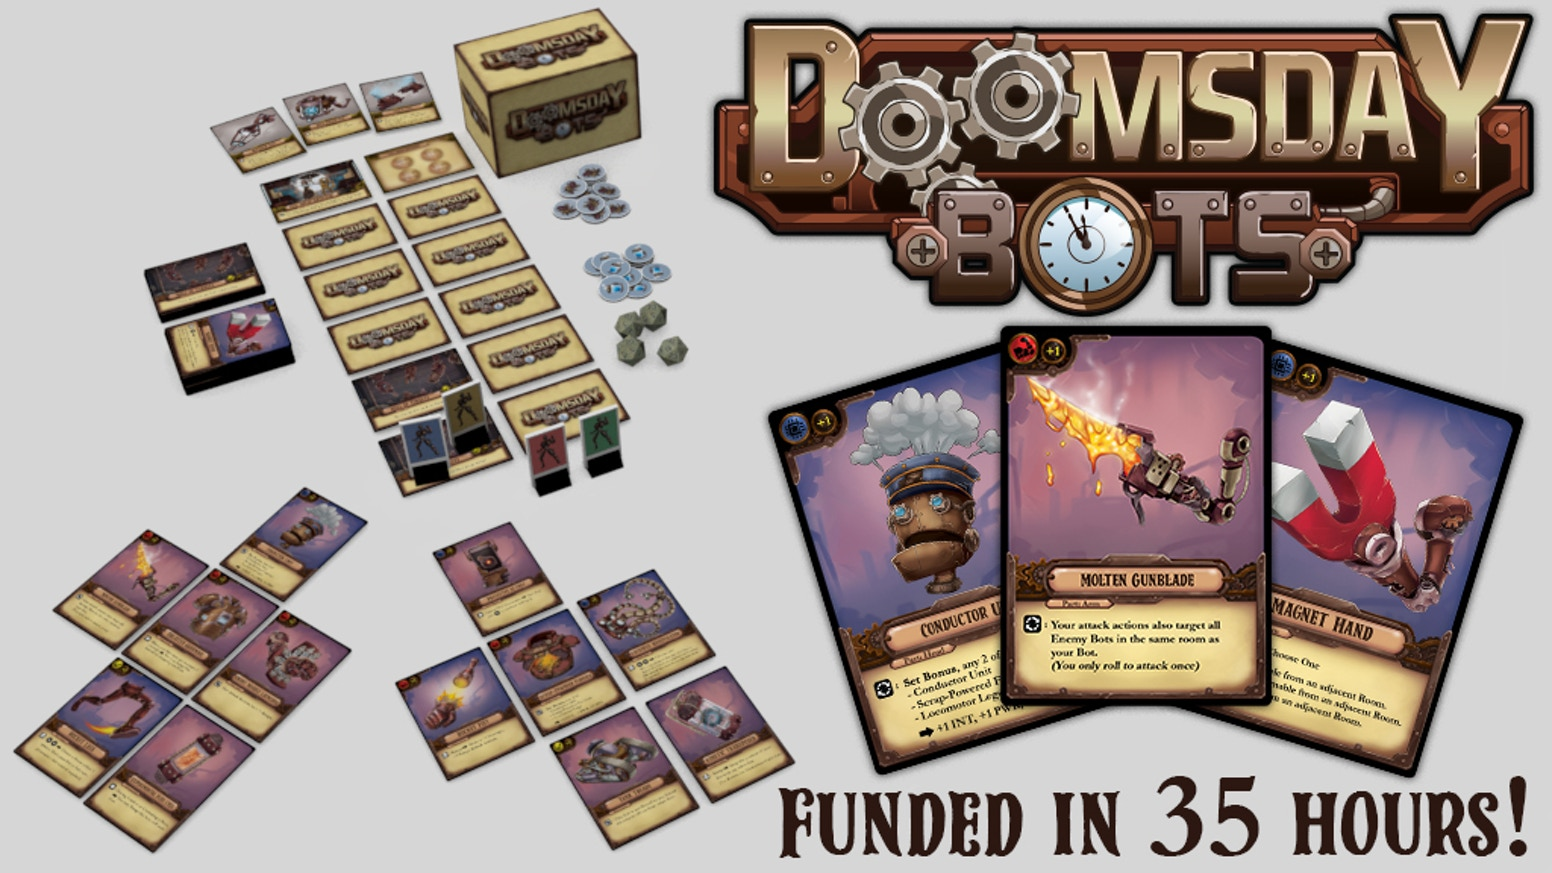 A 2-4 Player Competitive Board Game of Bot Building & Dungeon Running, Set in a Steampunk Post-Apocalyptic World.